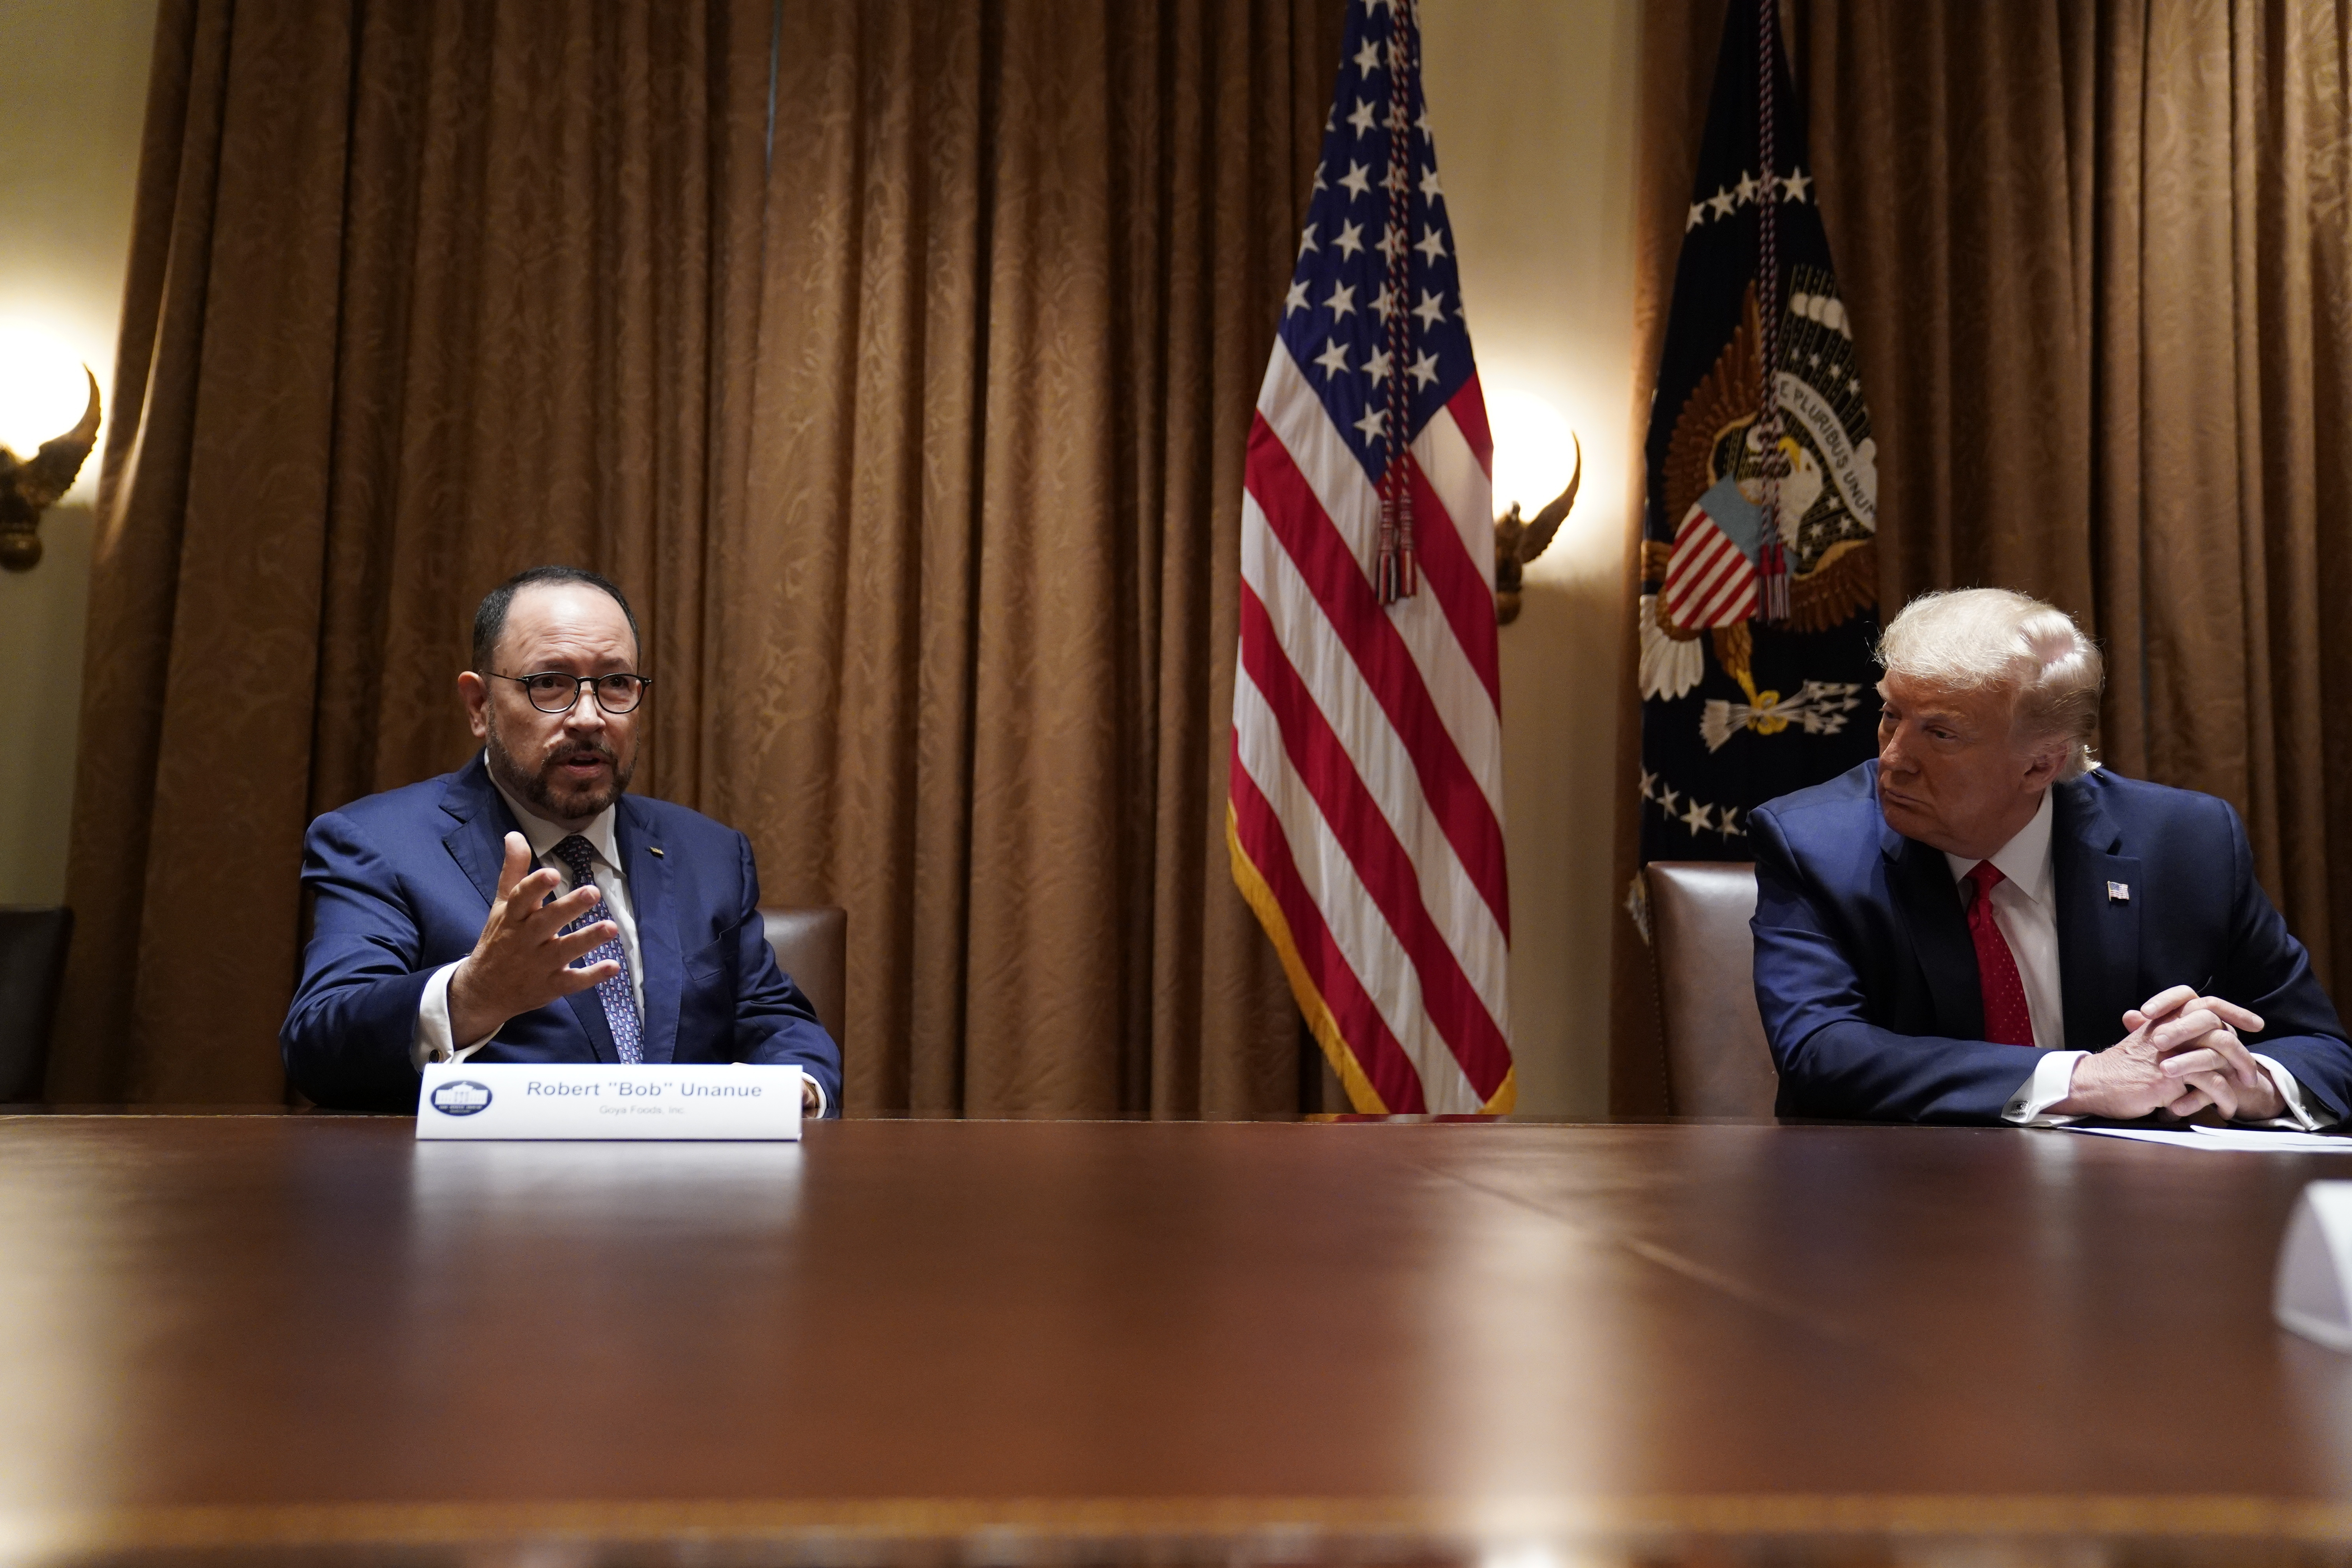 President Donald Trump listens as Robert Unanue, of Goya Foods, speaks during a roundtable meeting with Hispanic leaders in the Cabinet Room on July 9, 2020, in Washington.